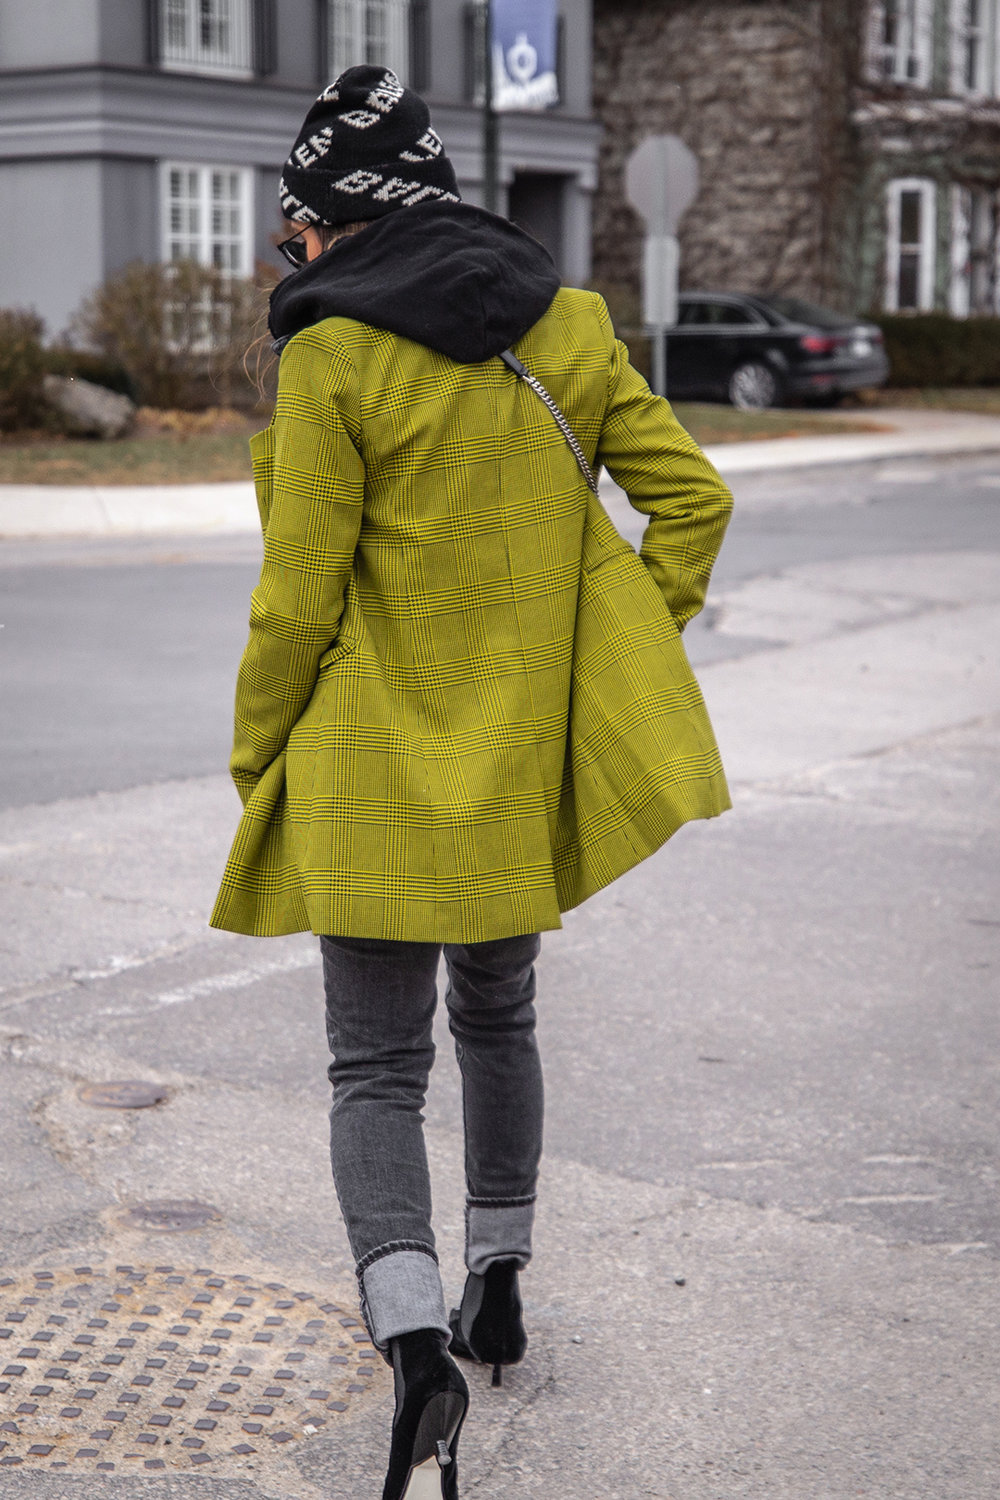 Nathalie Martin, Robert Rodriguez yellow plaid houndstooth blazer, Balenciaga logo beanie hat, Loewe velvet patent leather boots, grey jeans, Alexander Wang denim vest, Frank & Eileen hoodie, Saint Laurent LouLou bag, streetstyle woahstyle.com_6134.jpg